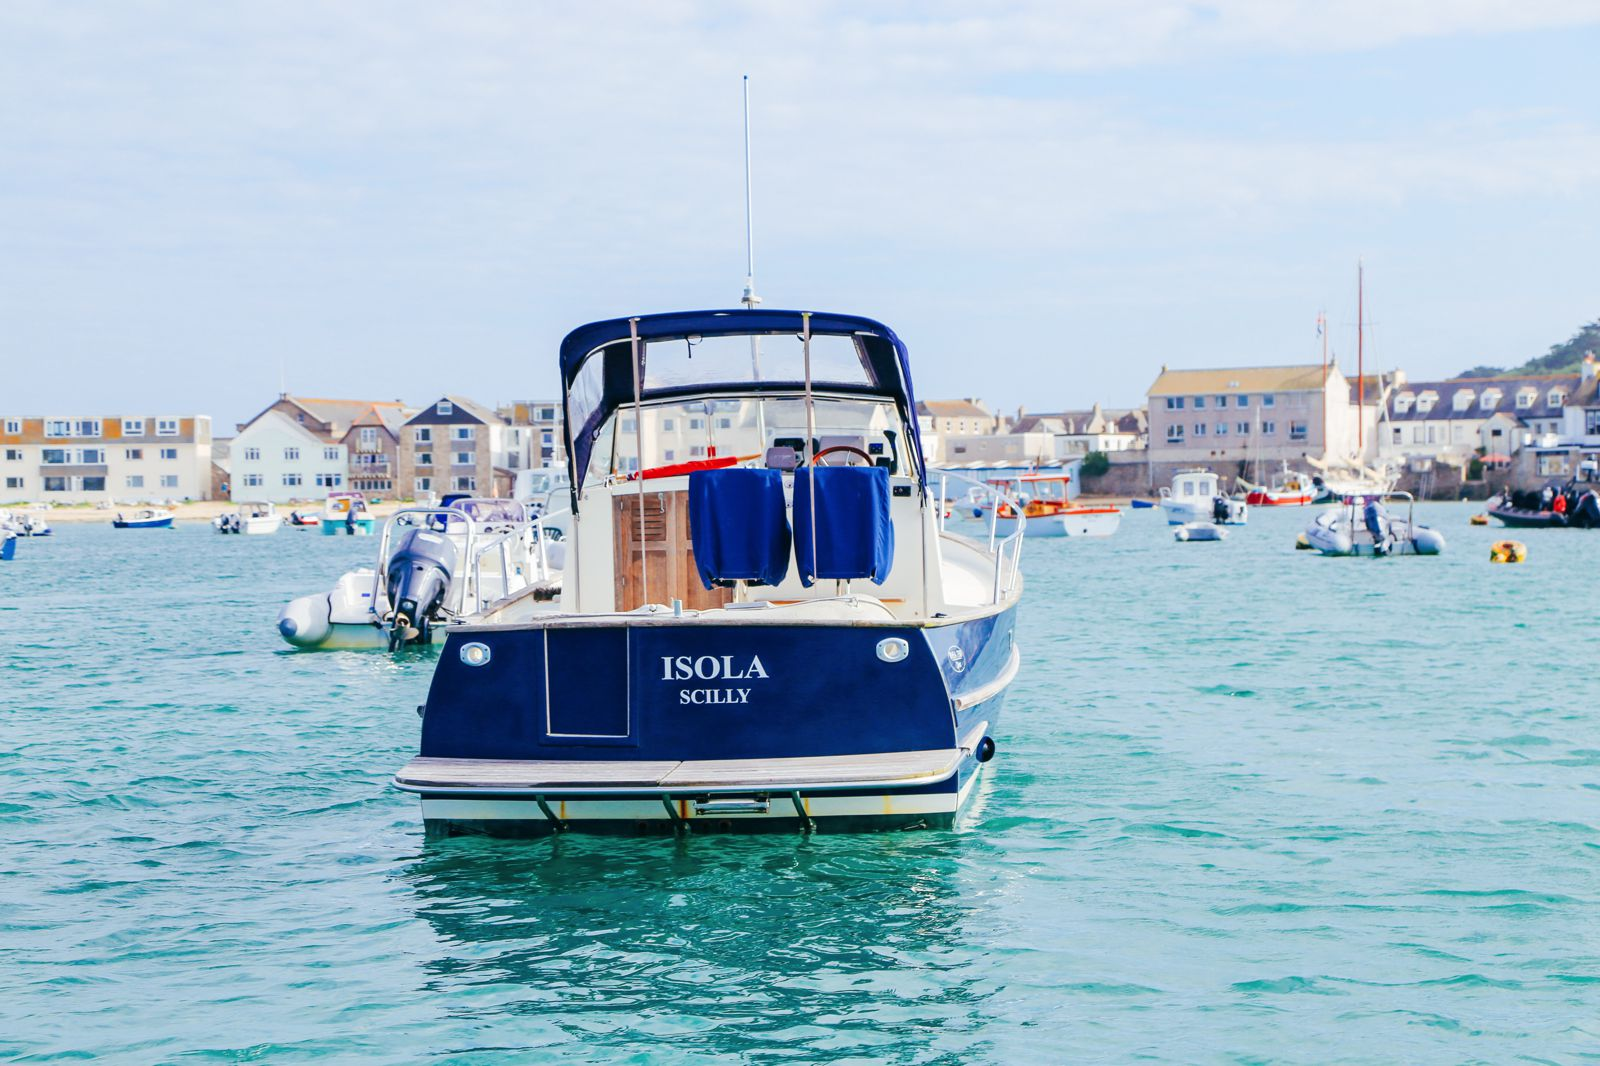 How To Get To The Isles Of Scilly - The UK